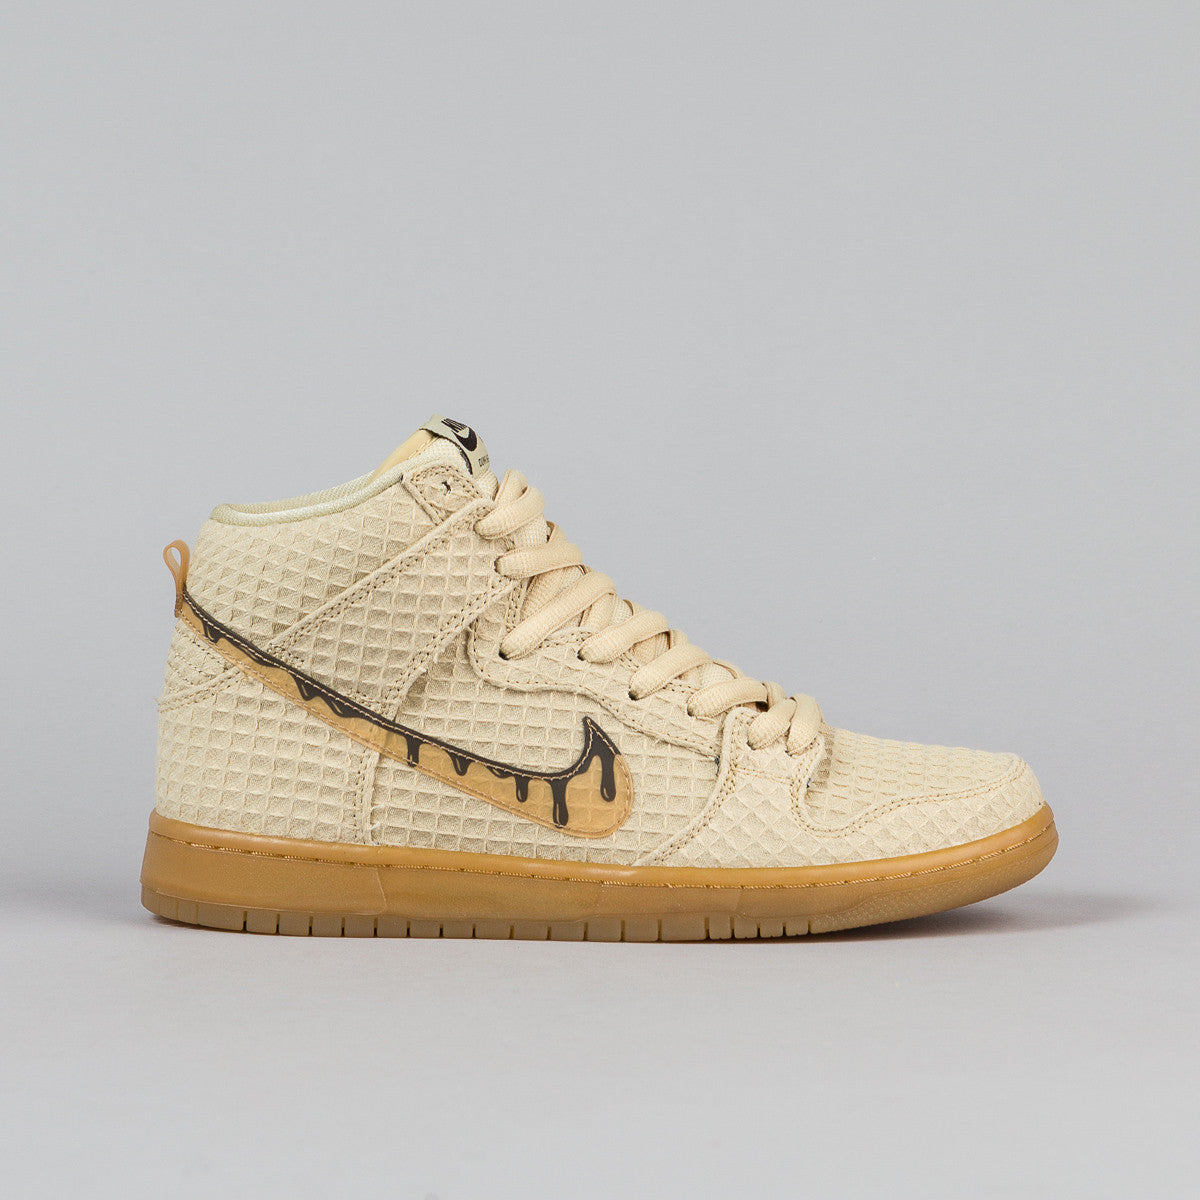 Nike SB Waffle Dunk High Shoes